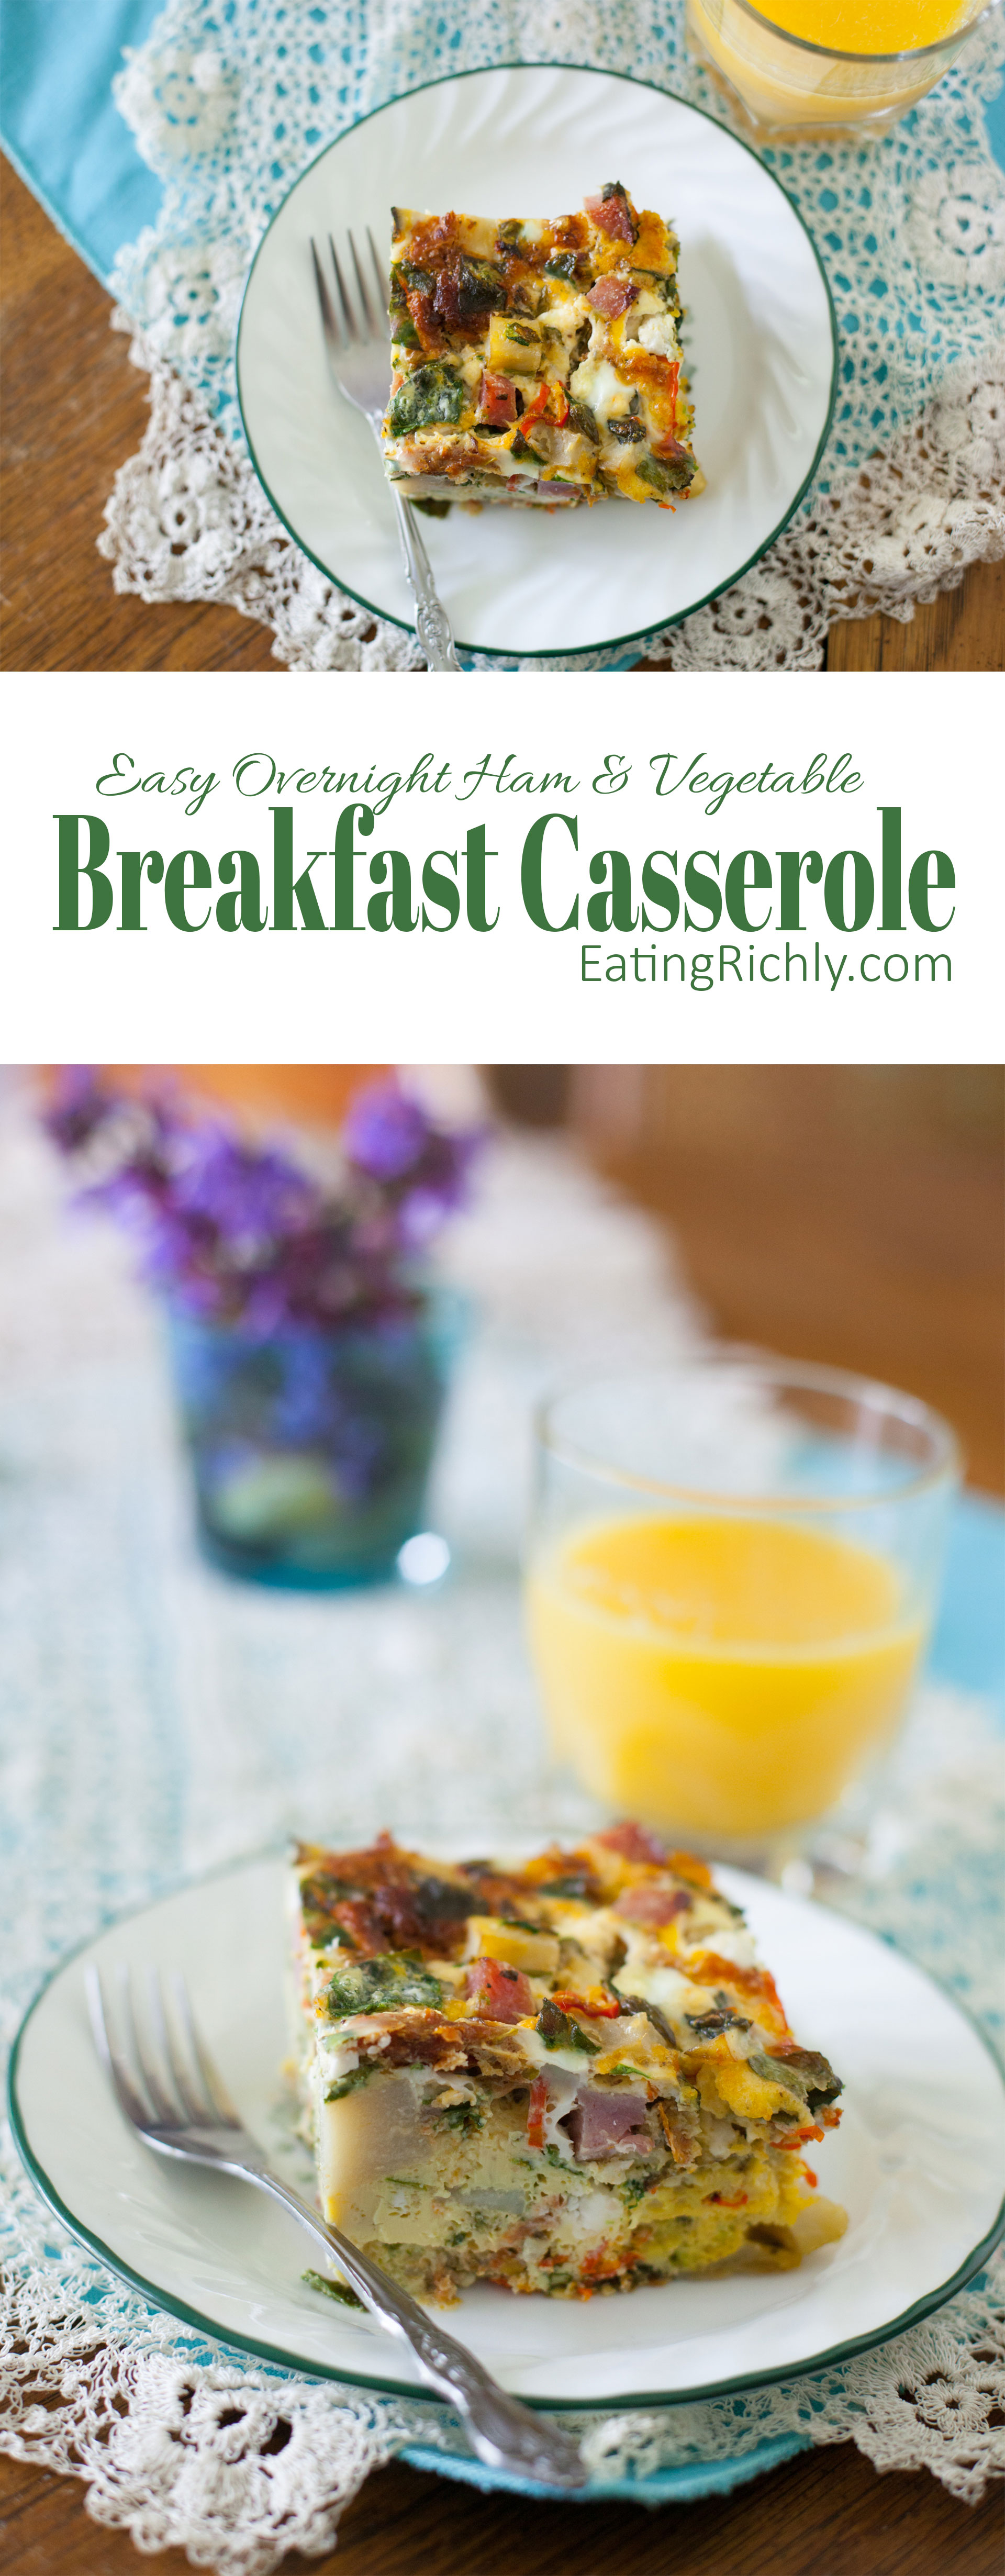 Breakfast casserole recipes easy overnight